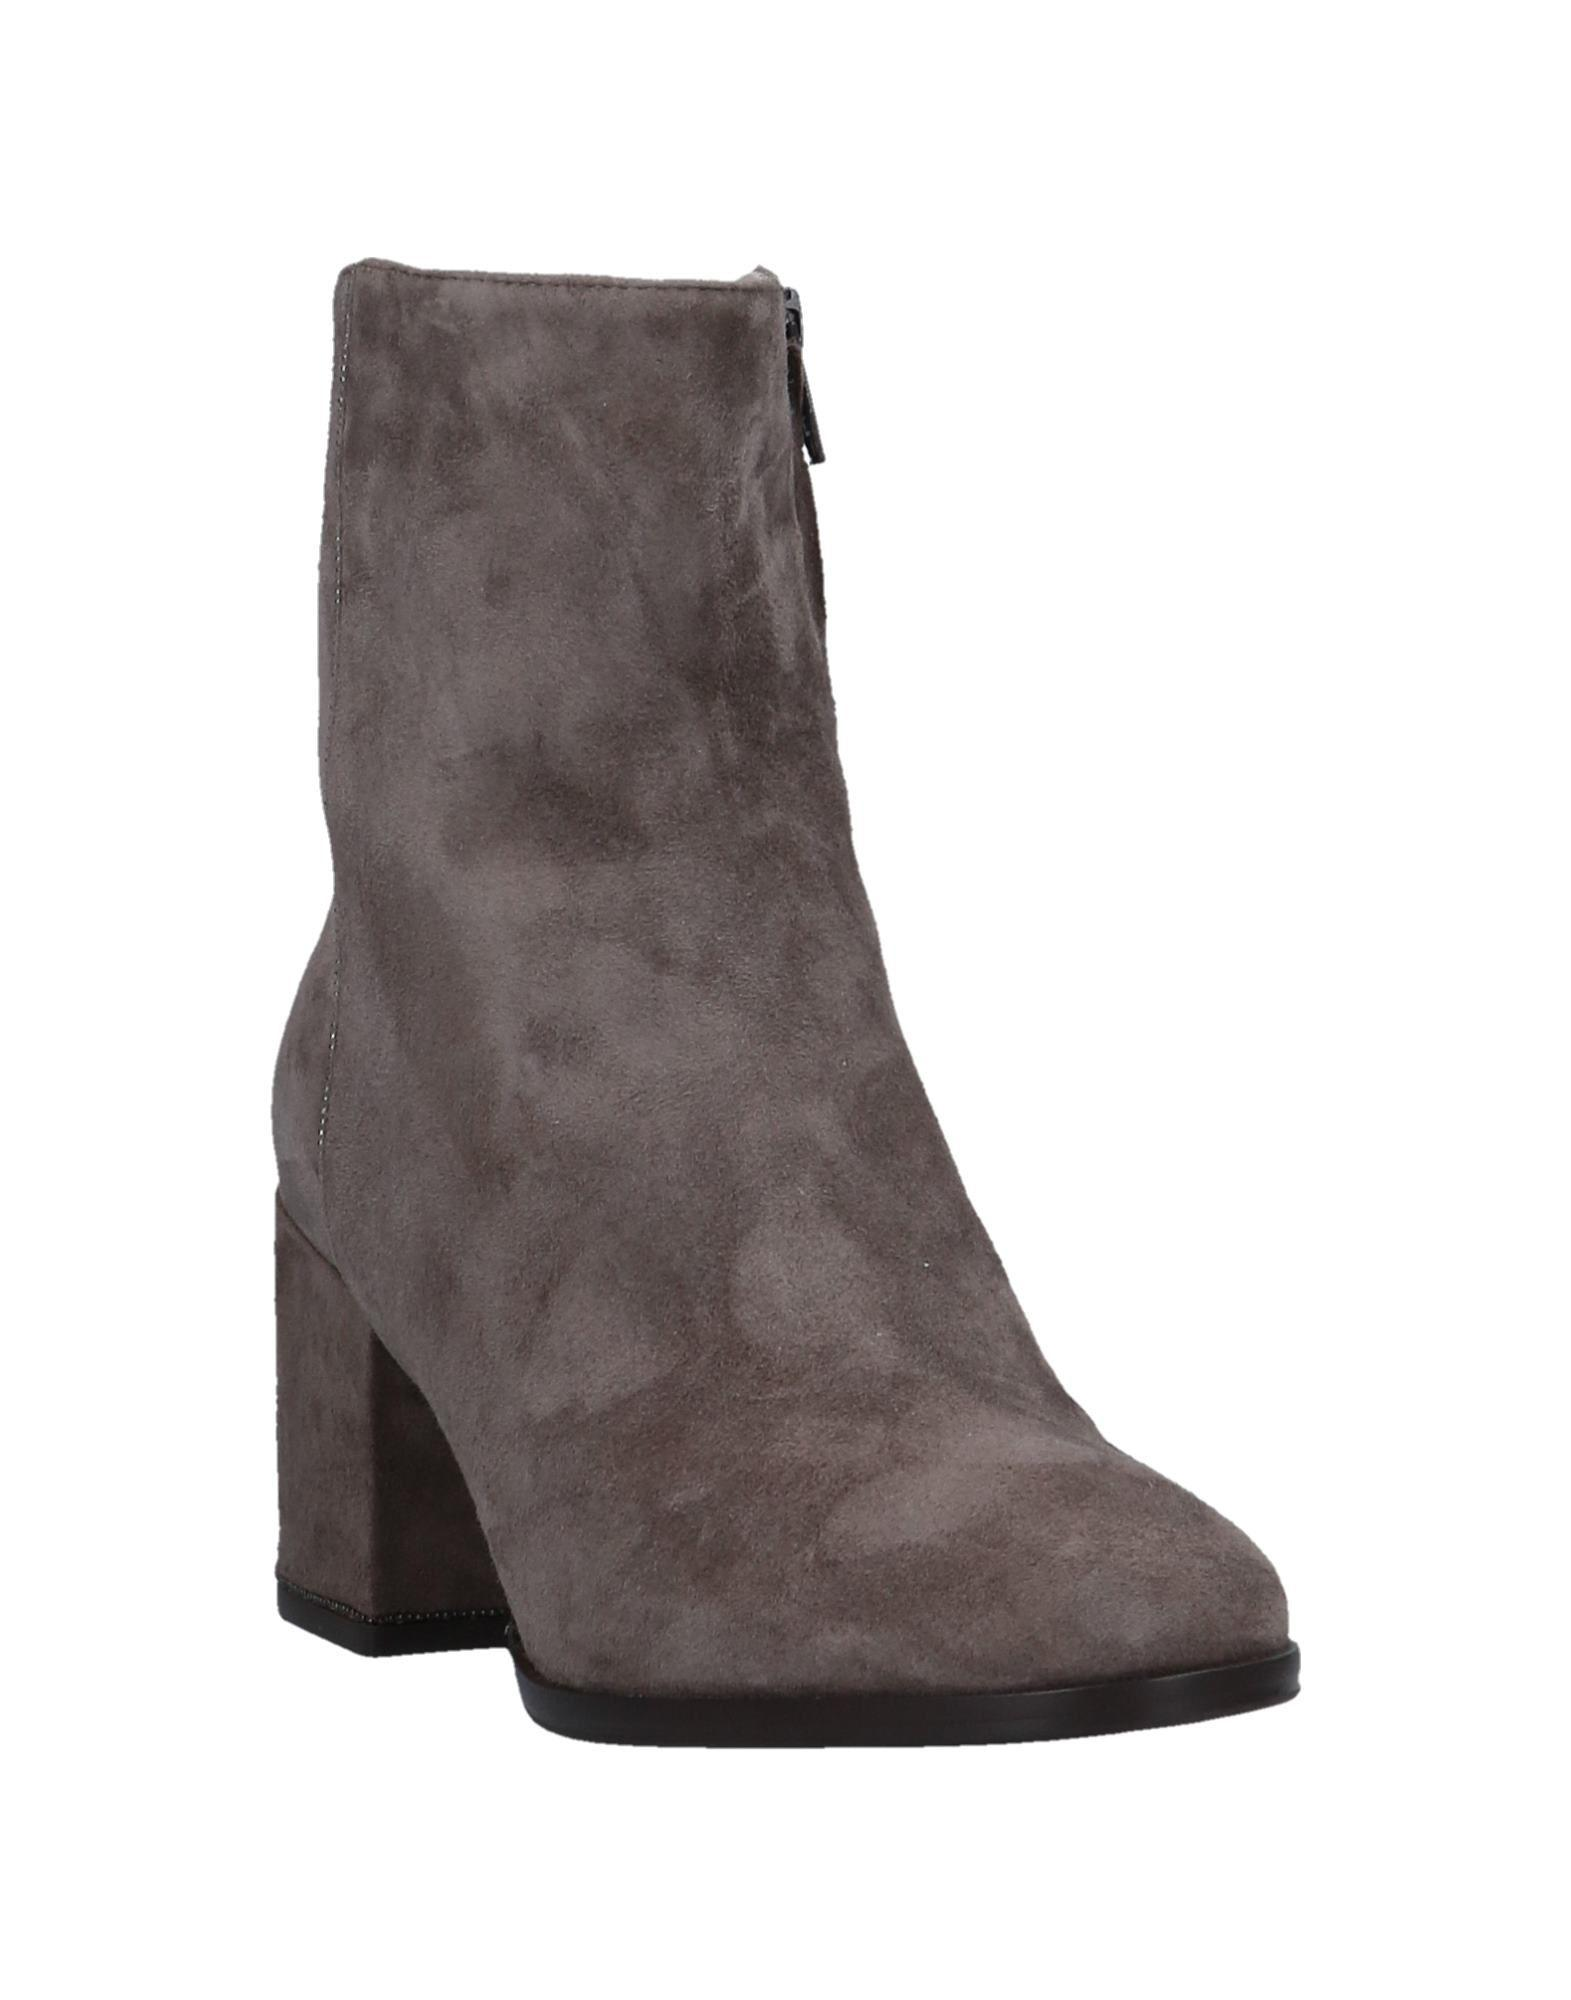 Fabiana Filippi Suede Ankle Boots in Grey (Grey)